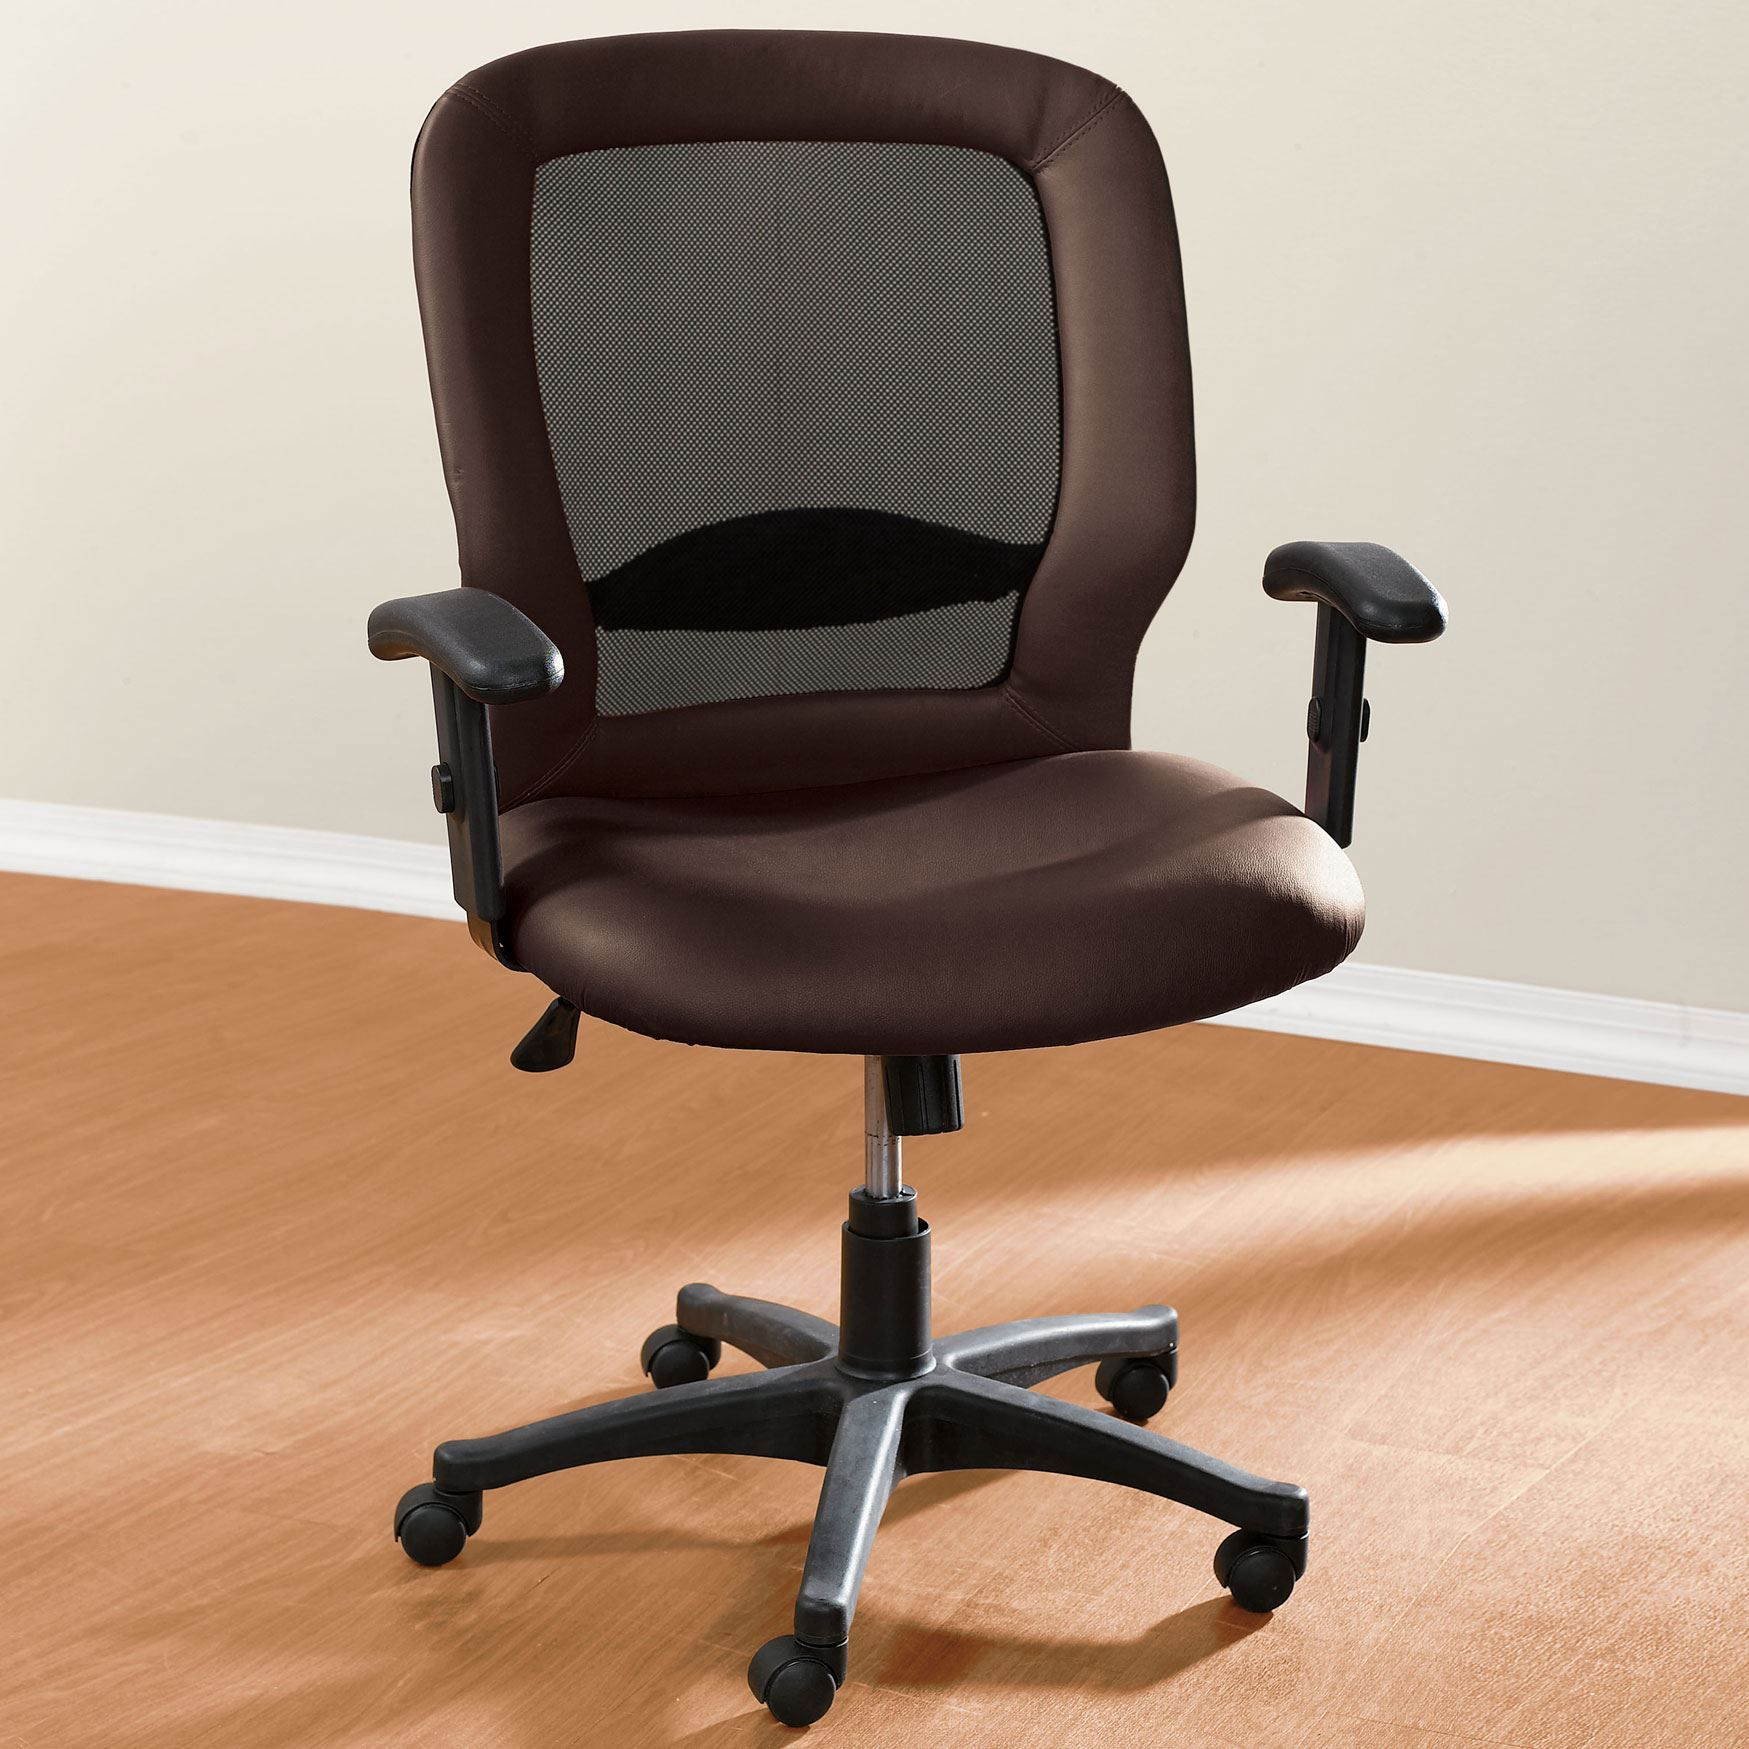 Extra Wide Mesh Computer Chair Extra Large Office Chairs